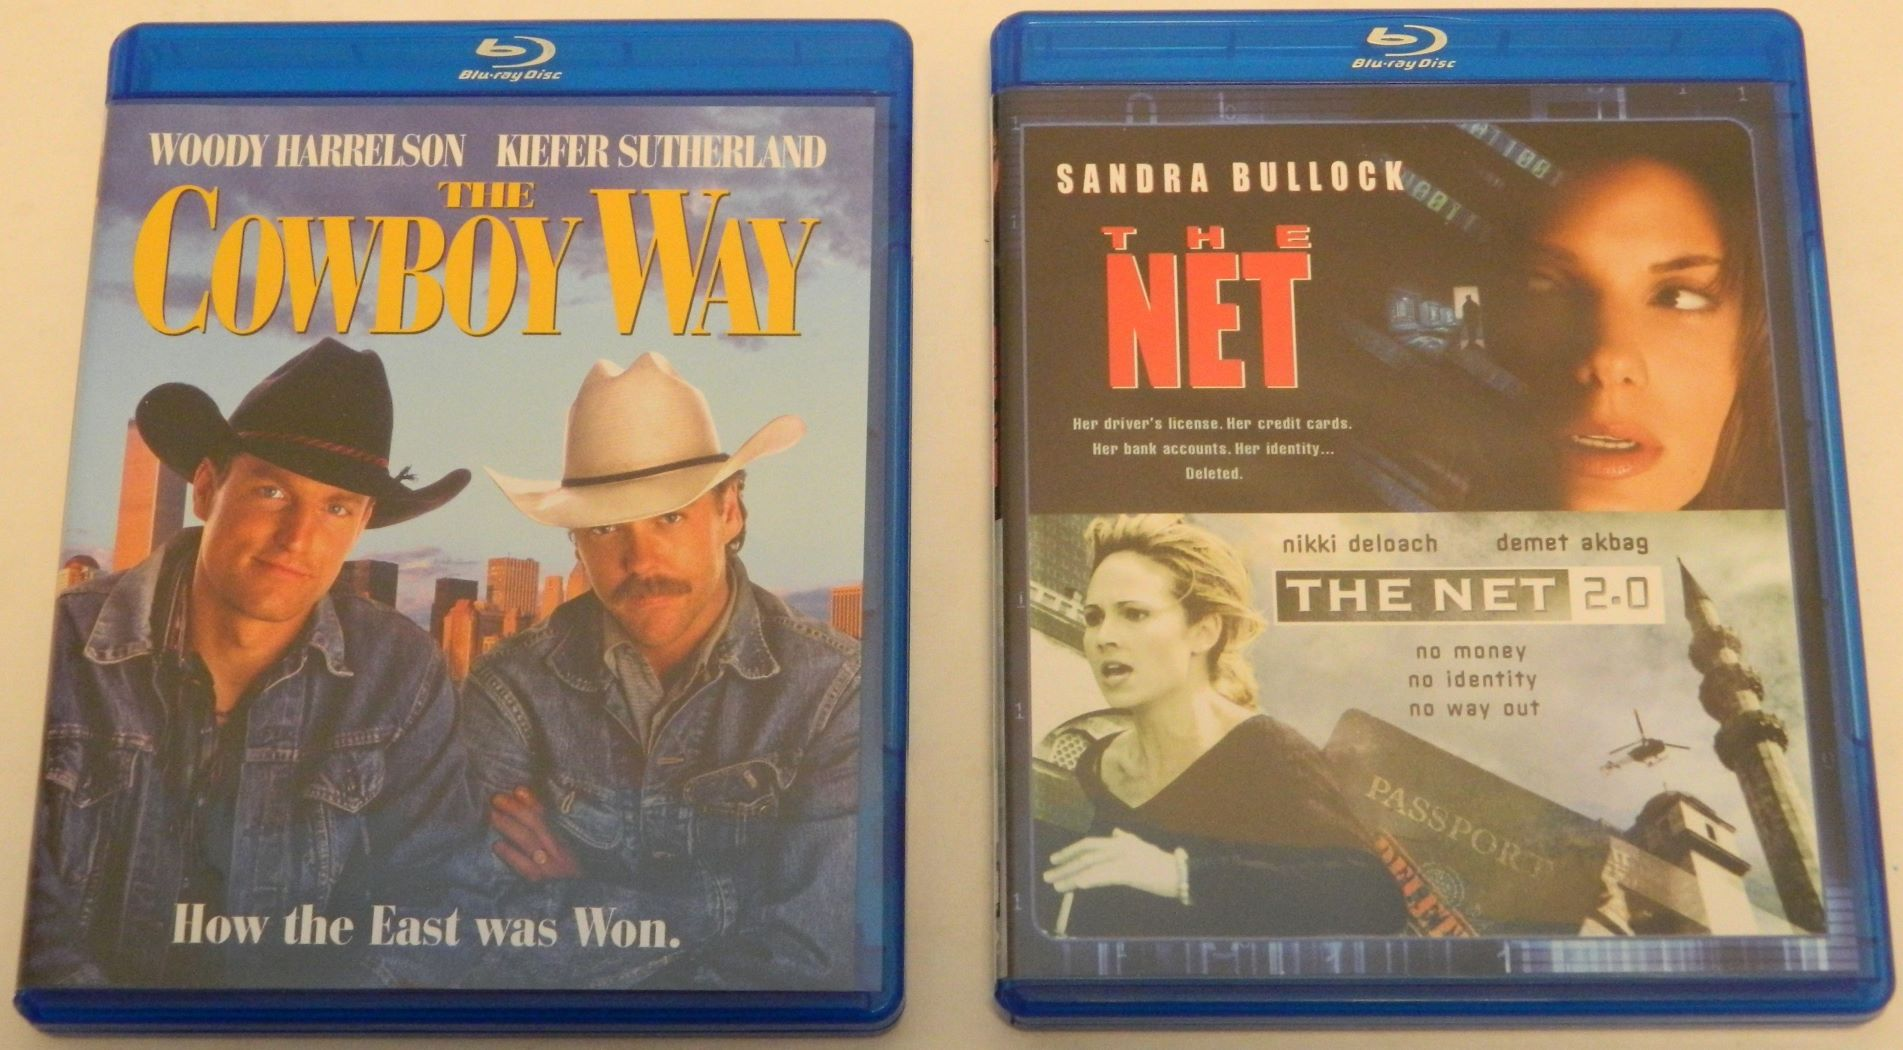 The Cowboy Way and The Net Blu-rays